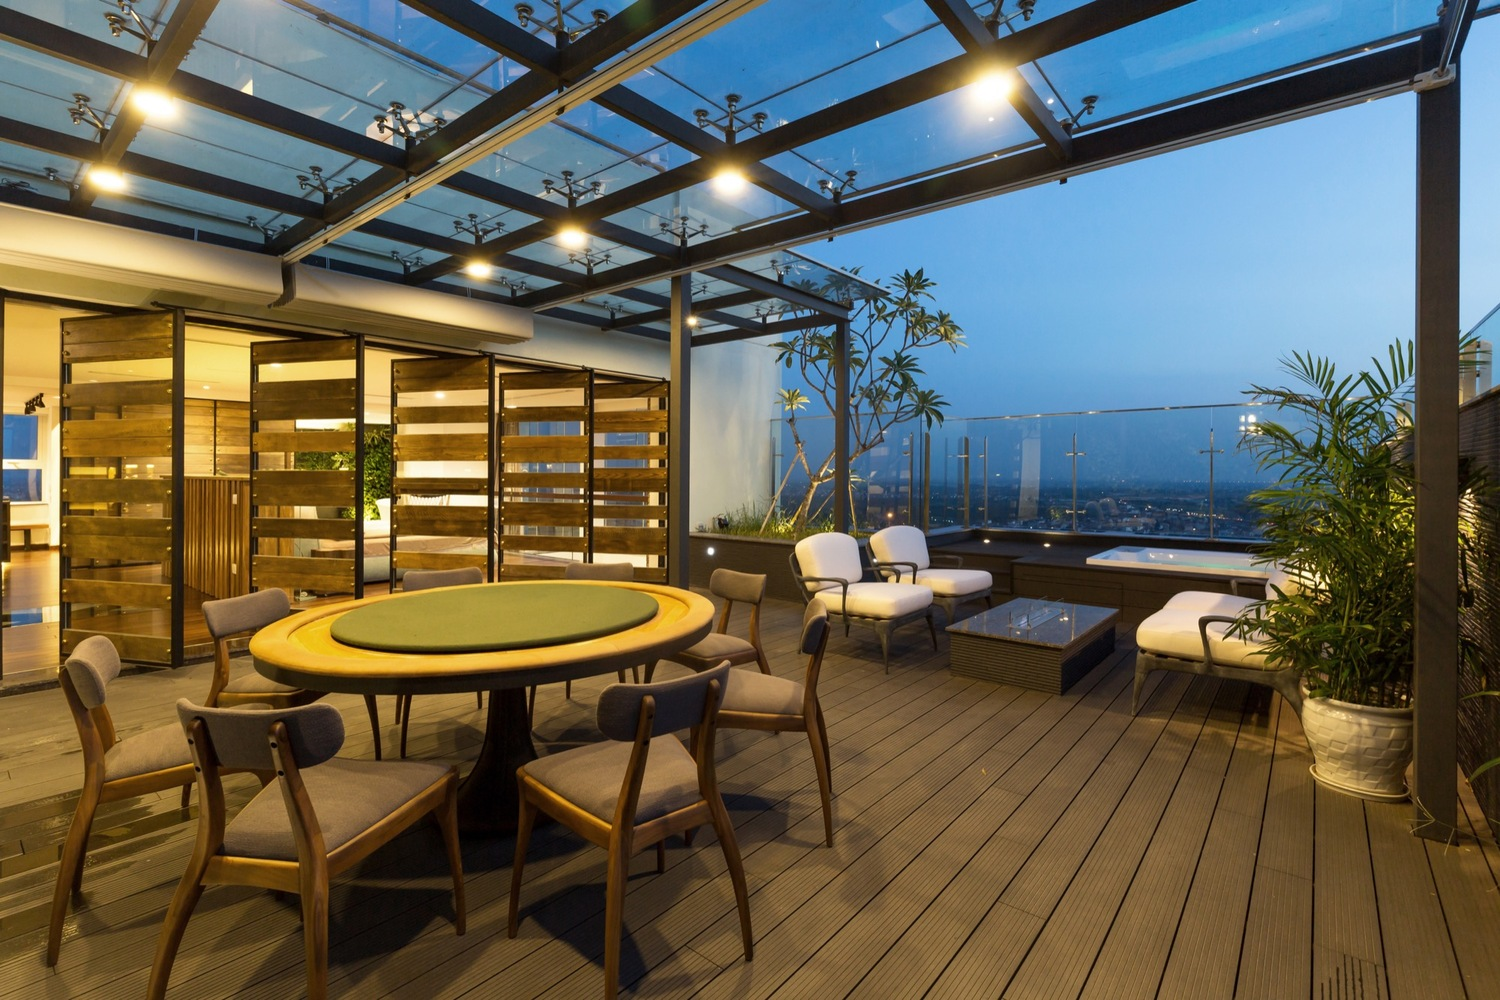 penthouseecopark_photos_22.jpg